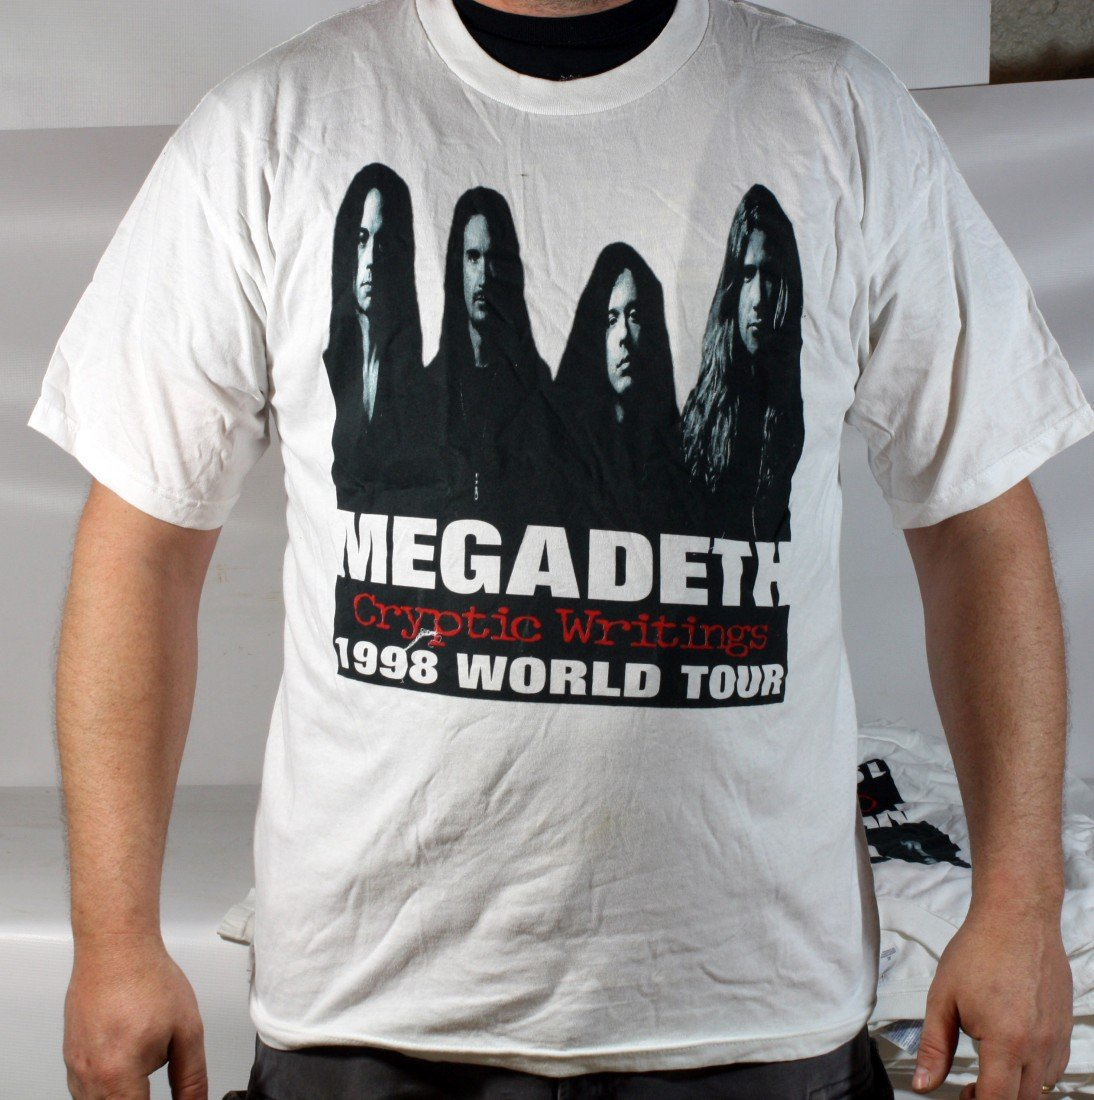 15: Lot of 9 MegaDeth T-Shirts from their 1998 tour